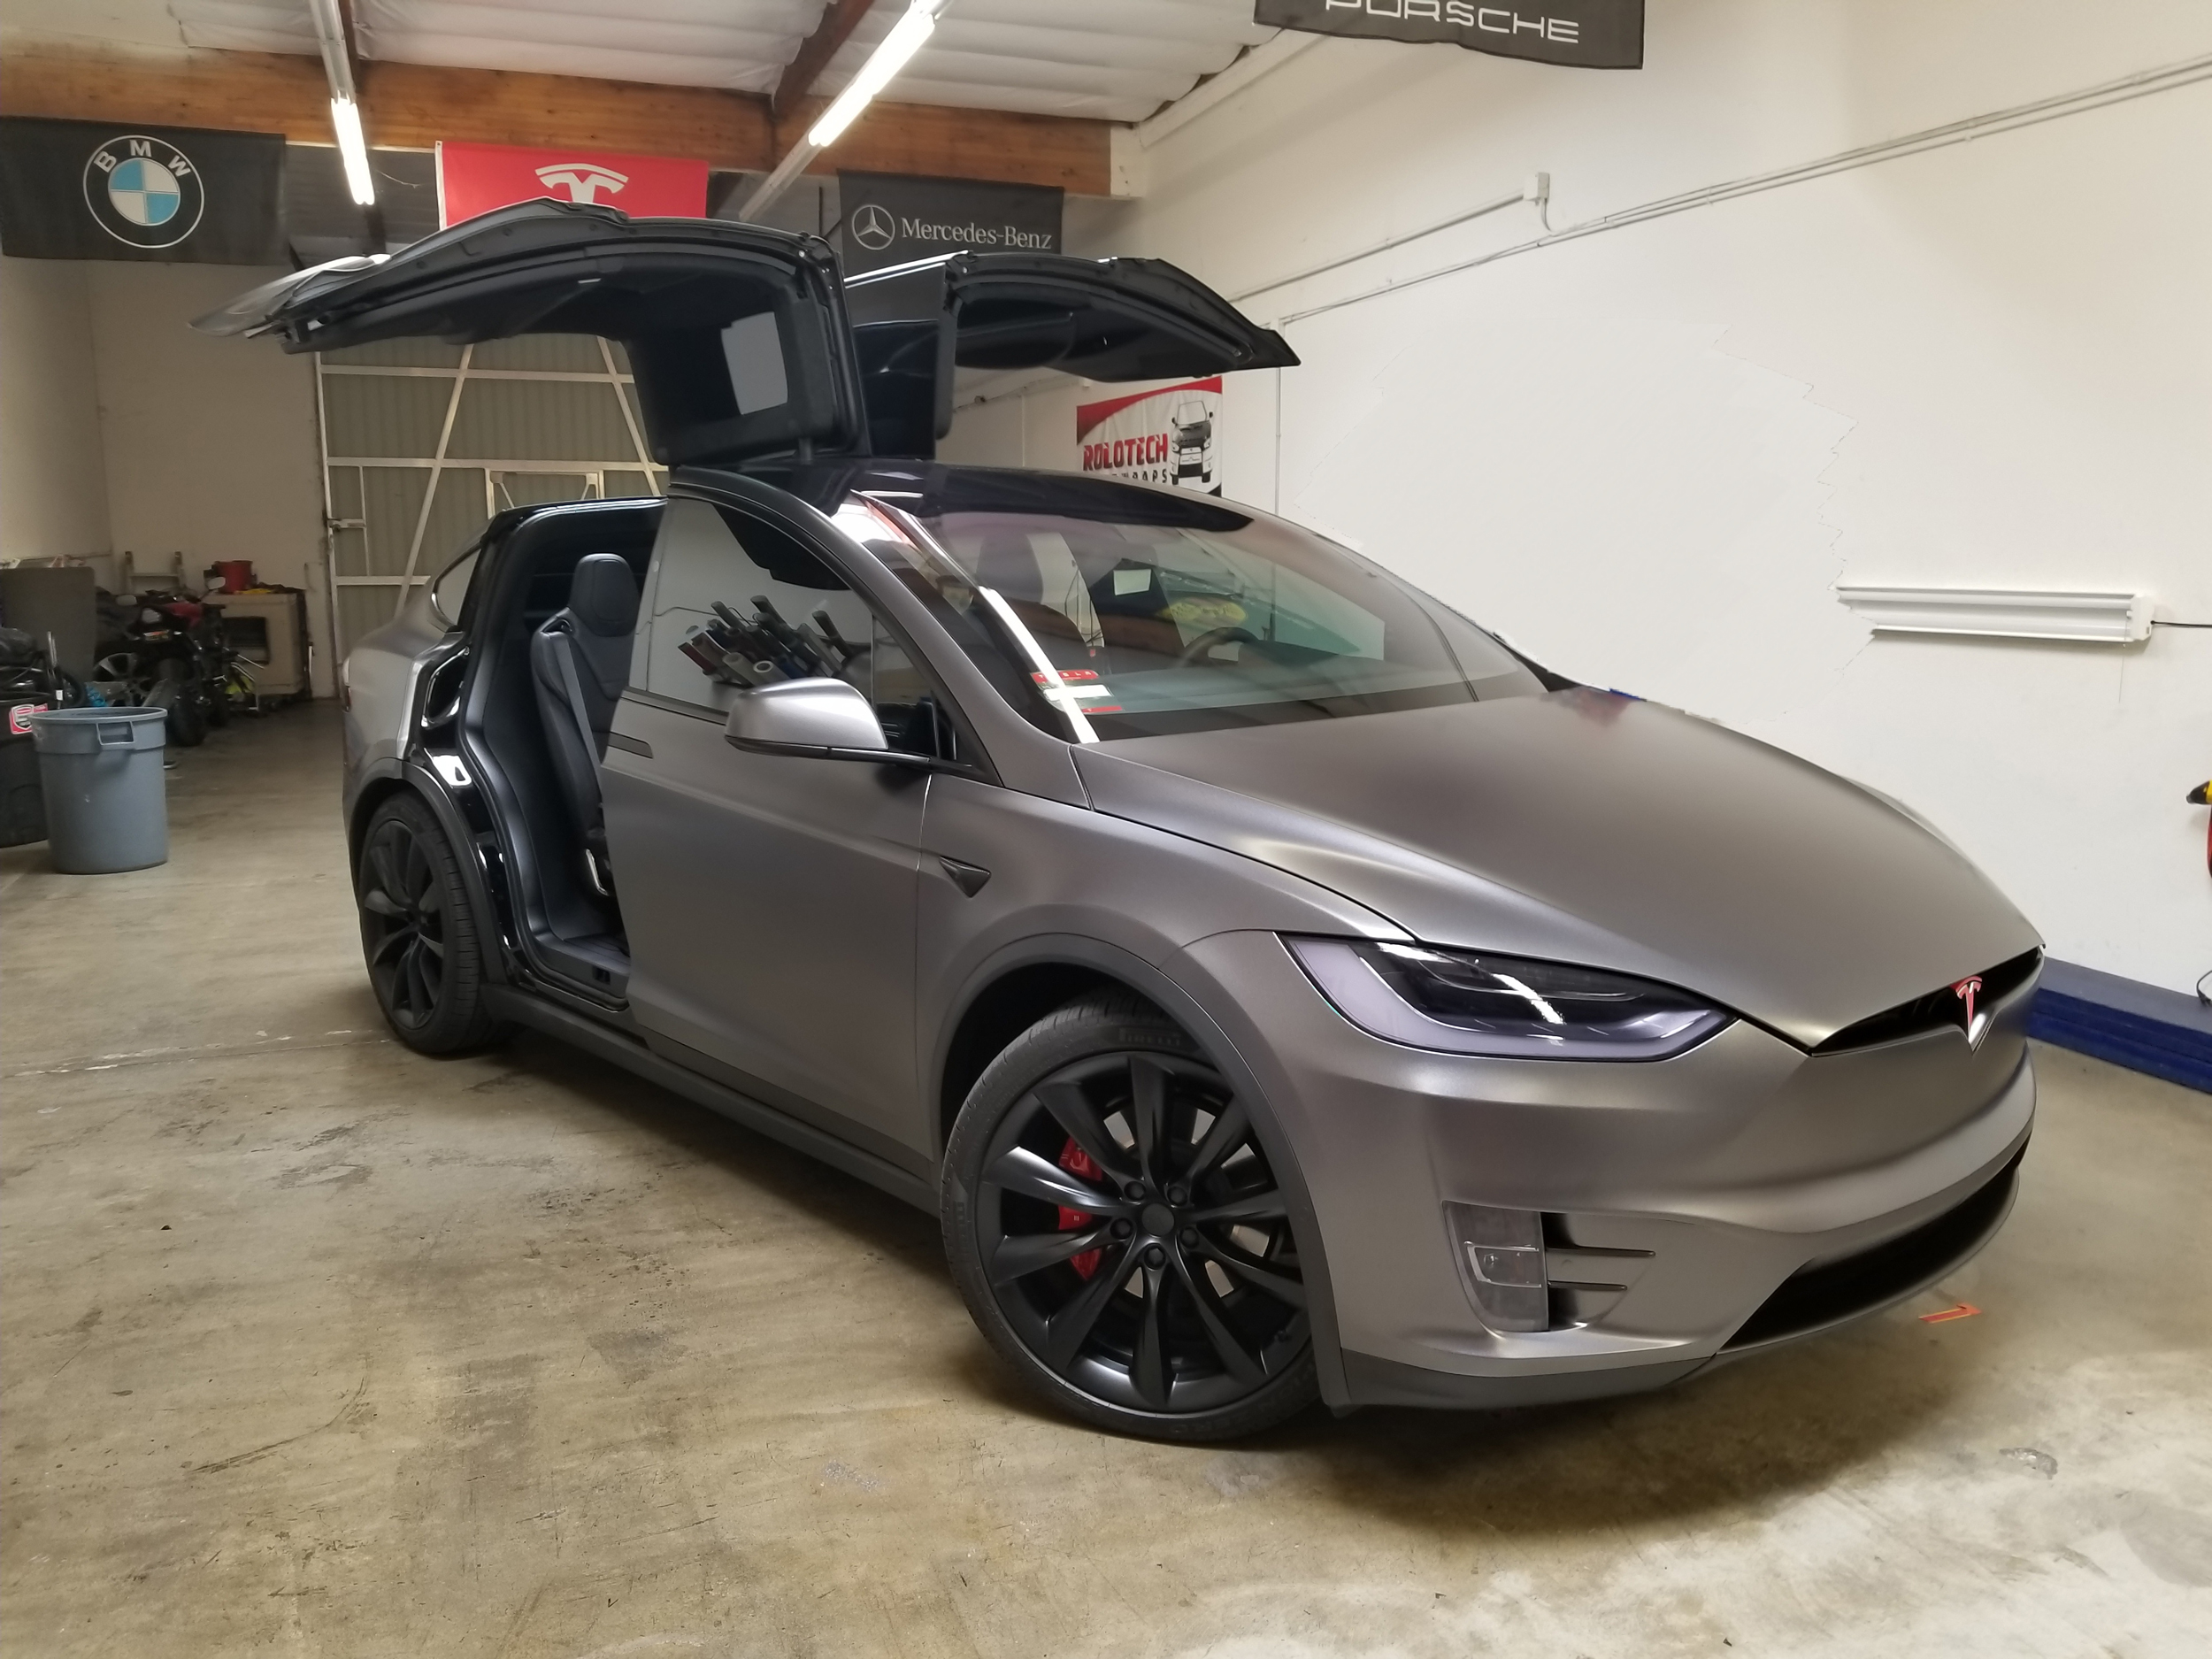 Tesla Model X Chrome blackout and full wrap - Rolotech